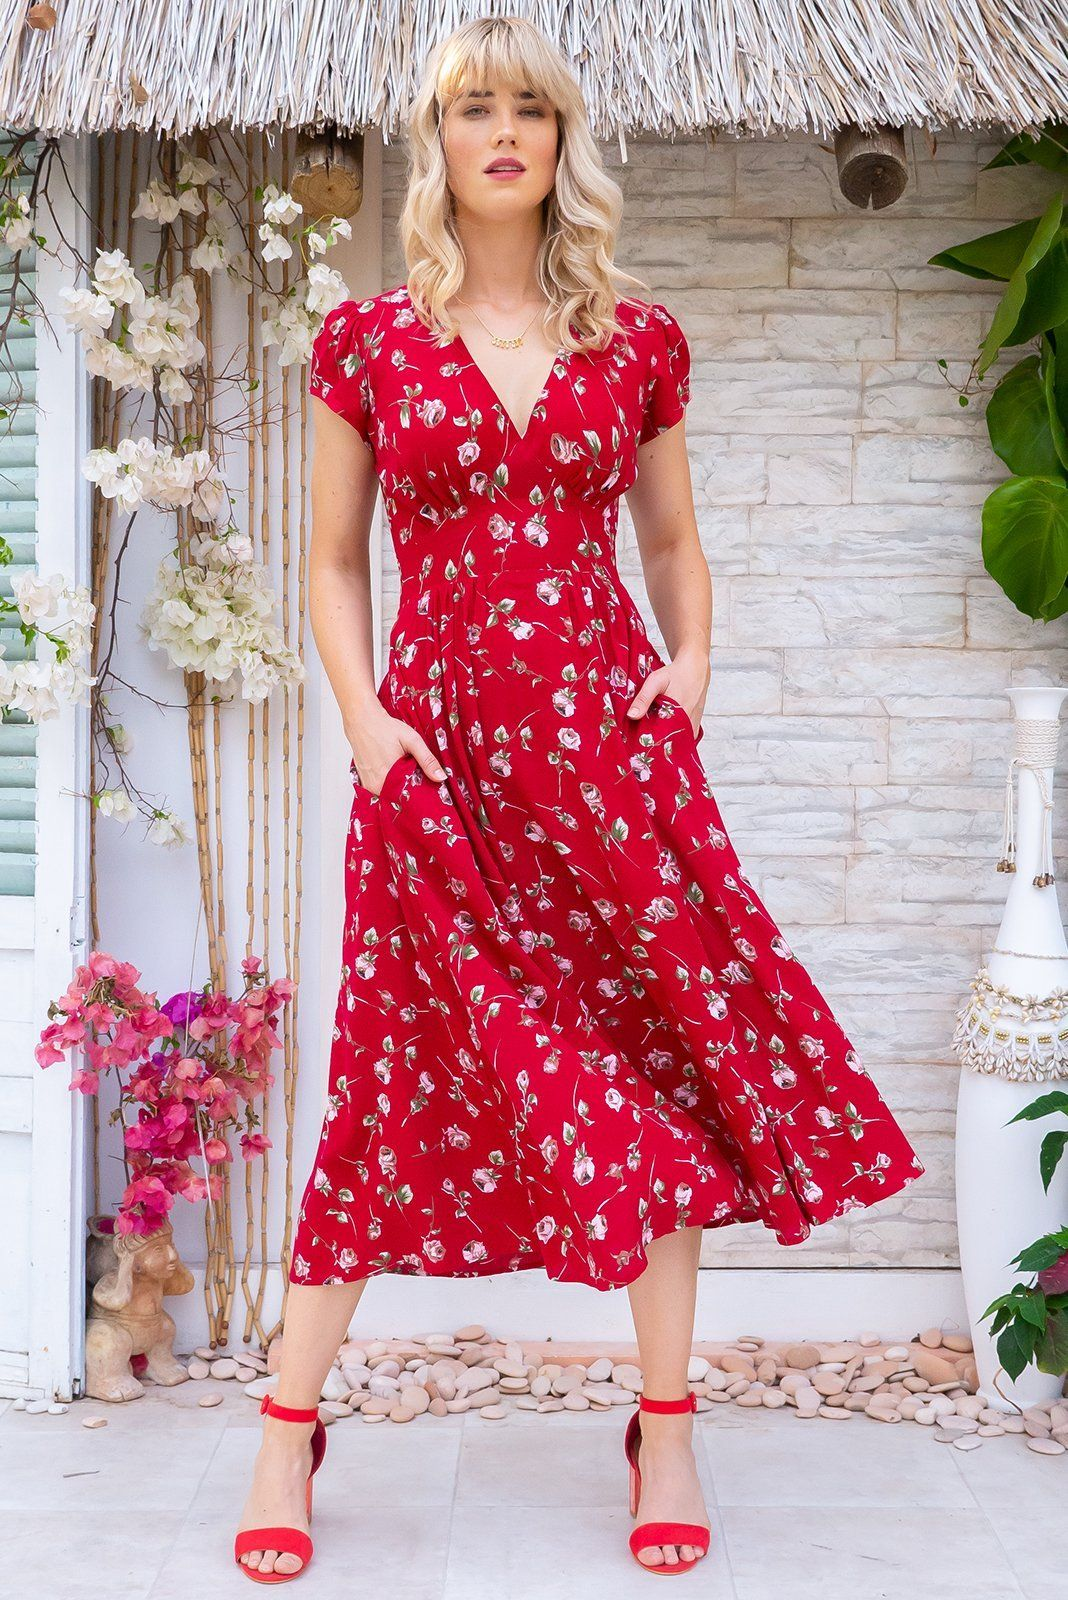 2020 Women Dress Casual Dress Print Plus Size Formal Dresses Ladies Gown With Price